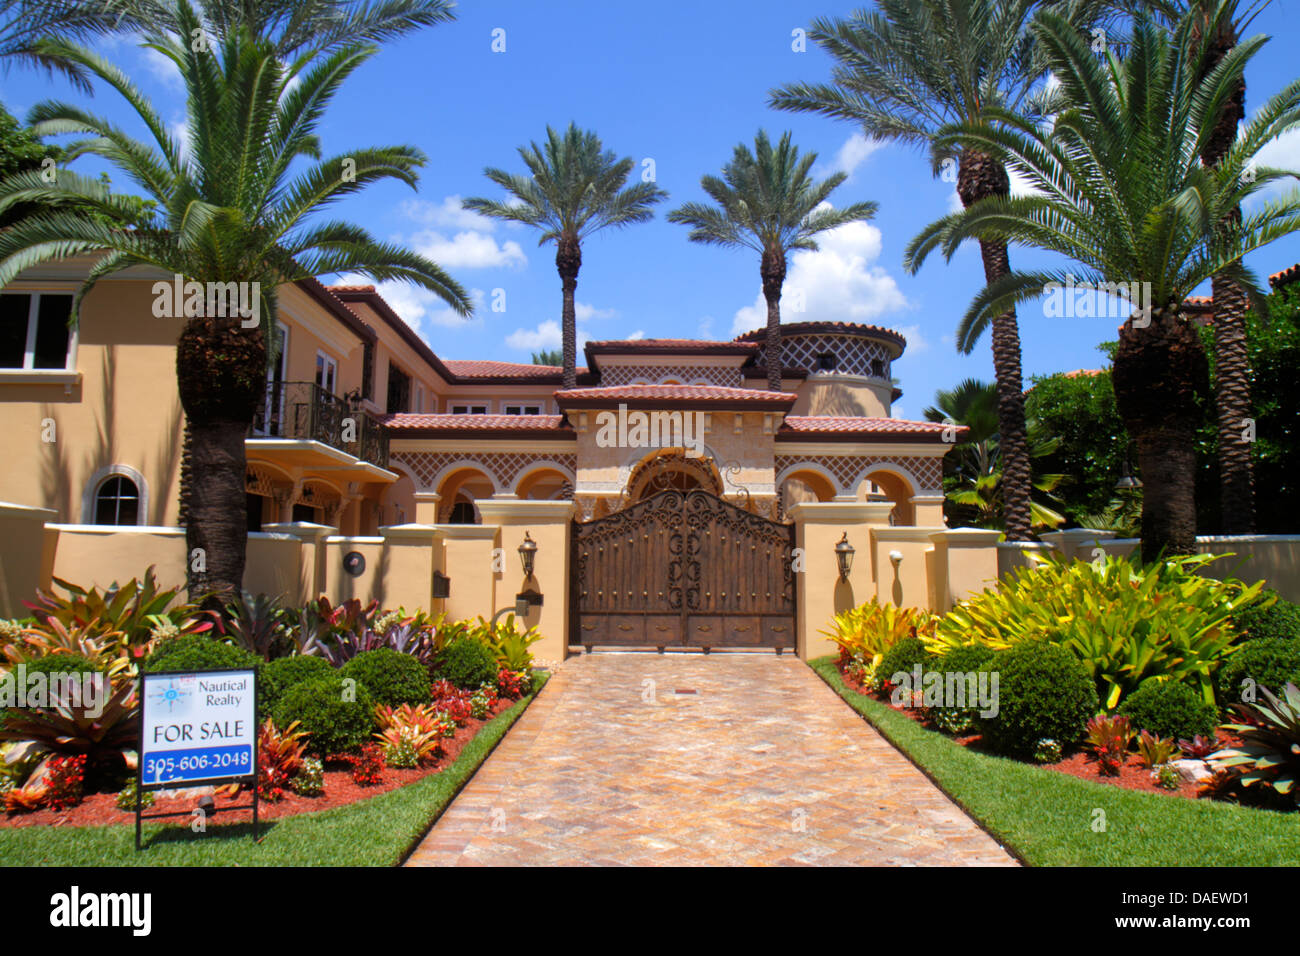 Miami beach florida house home mansion sale sign real for Beach mansions for sale